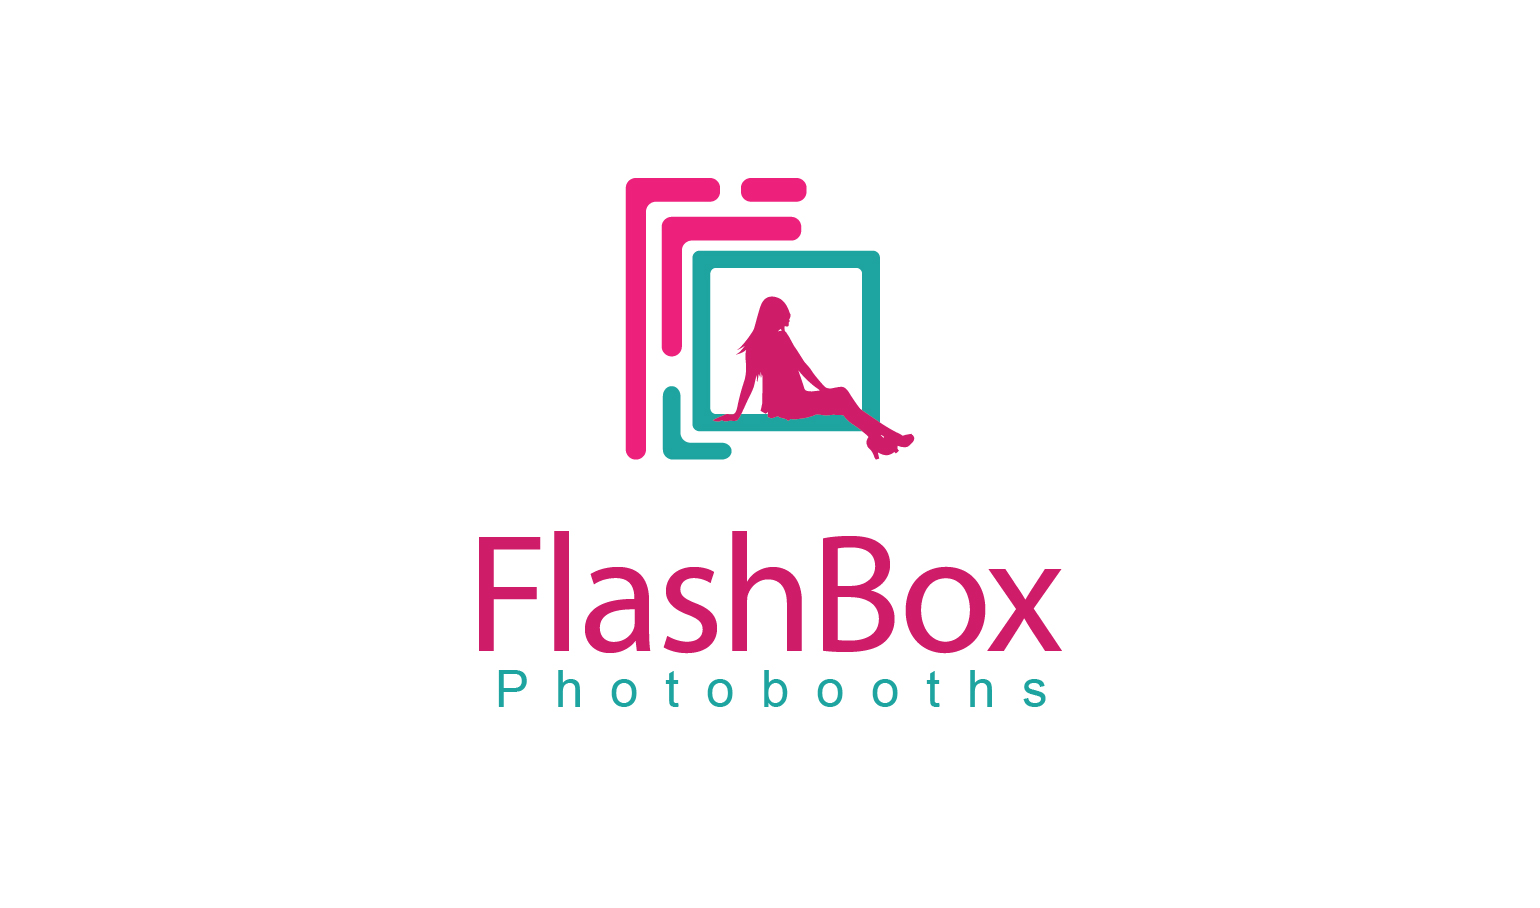 Logo Design by Francis Jun Bayron - Entry No. 50 in the Logo Design Contest New Logo Design for FlashBox Photobooths.